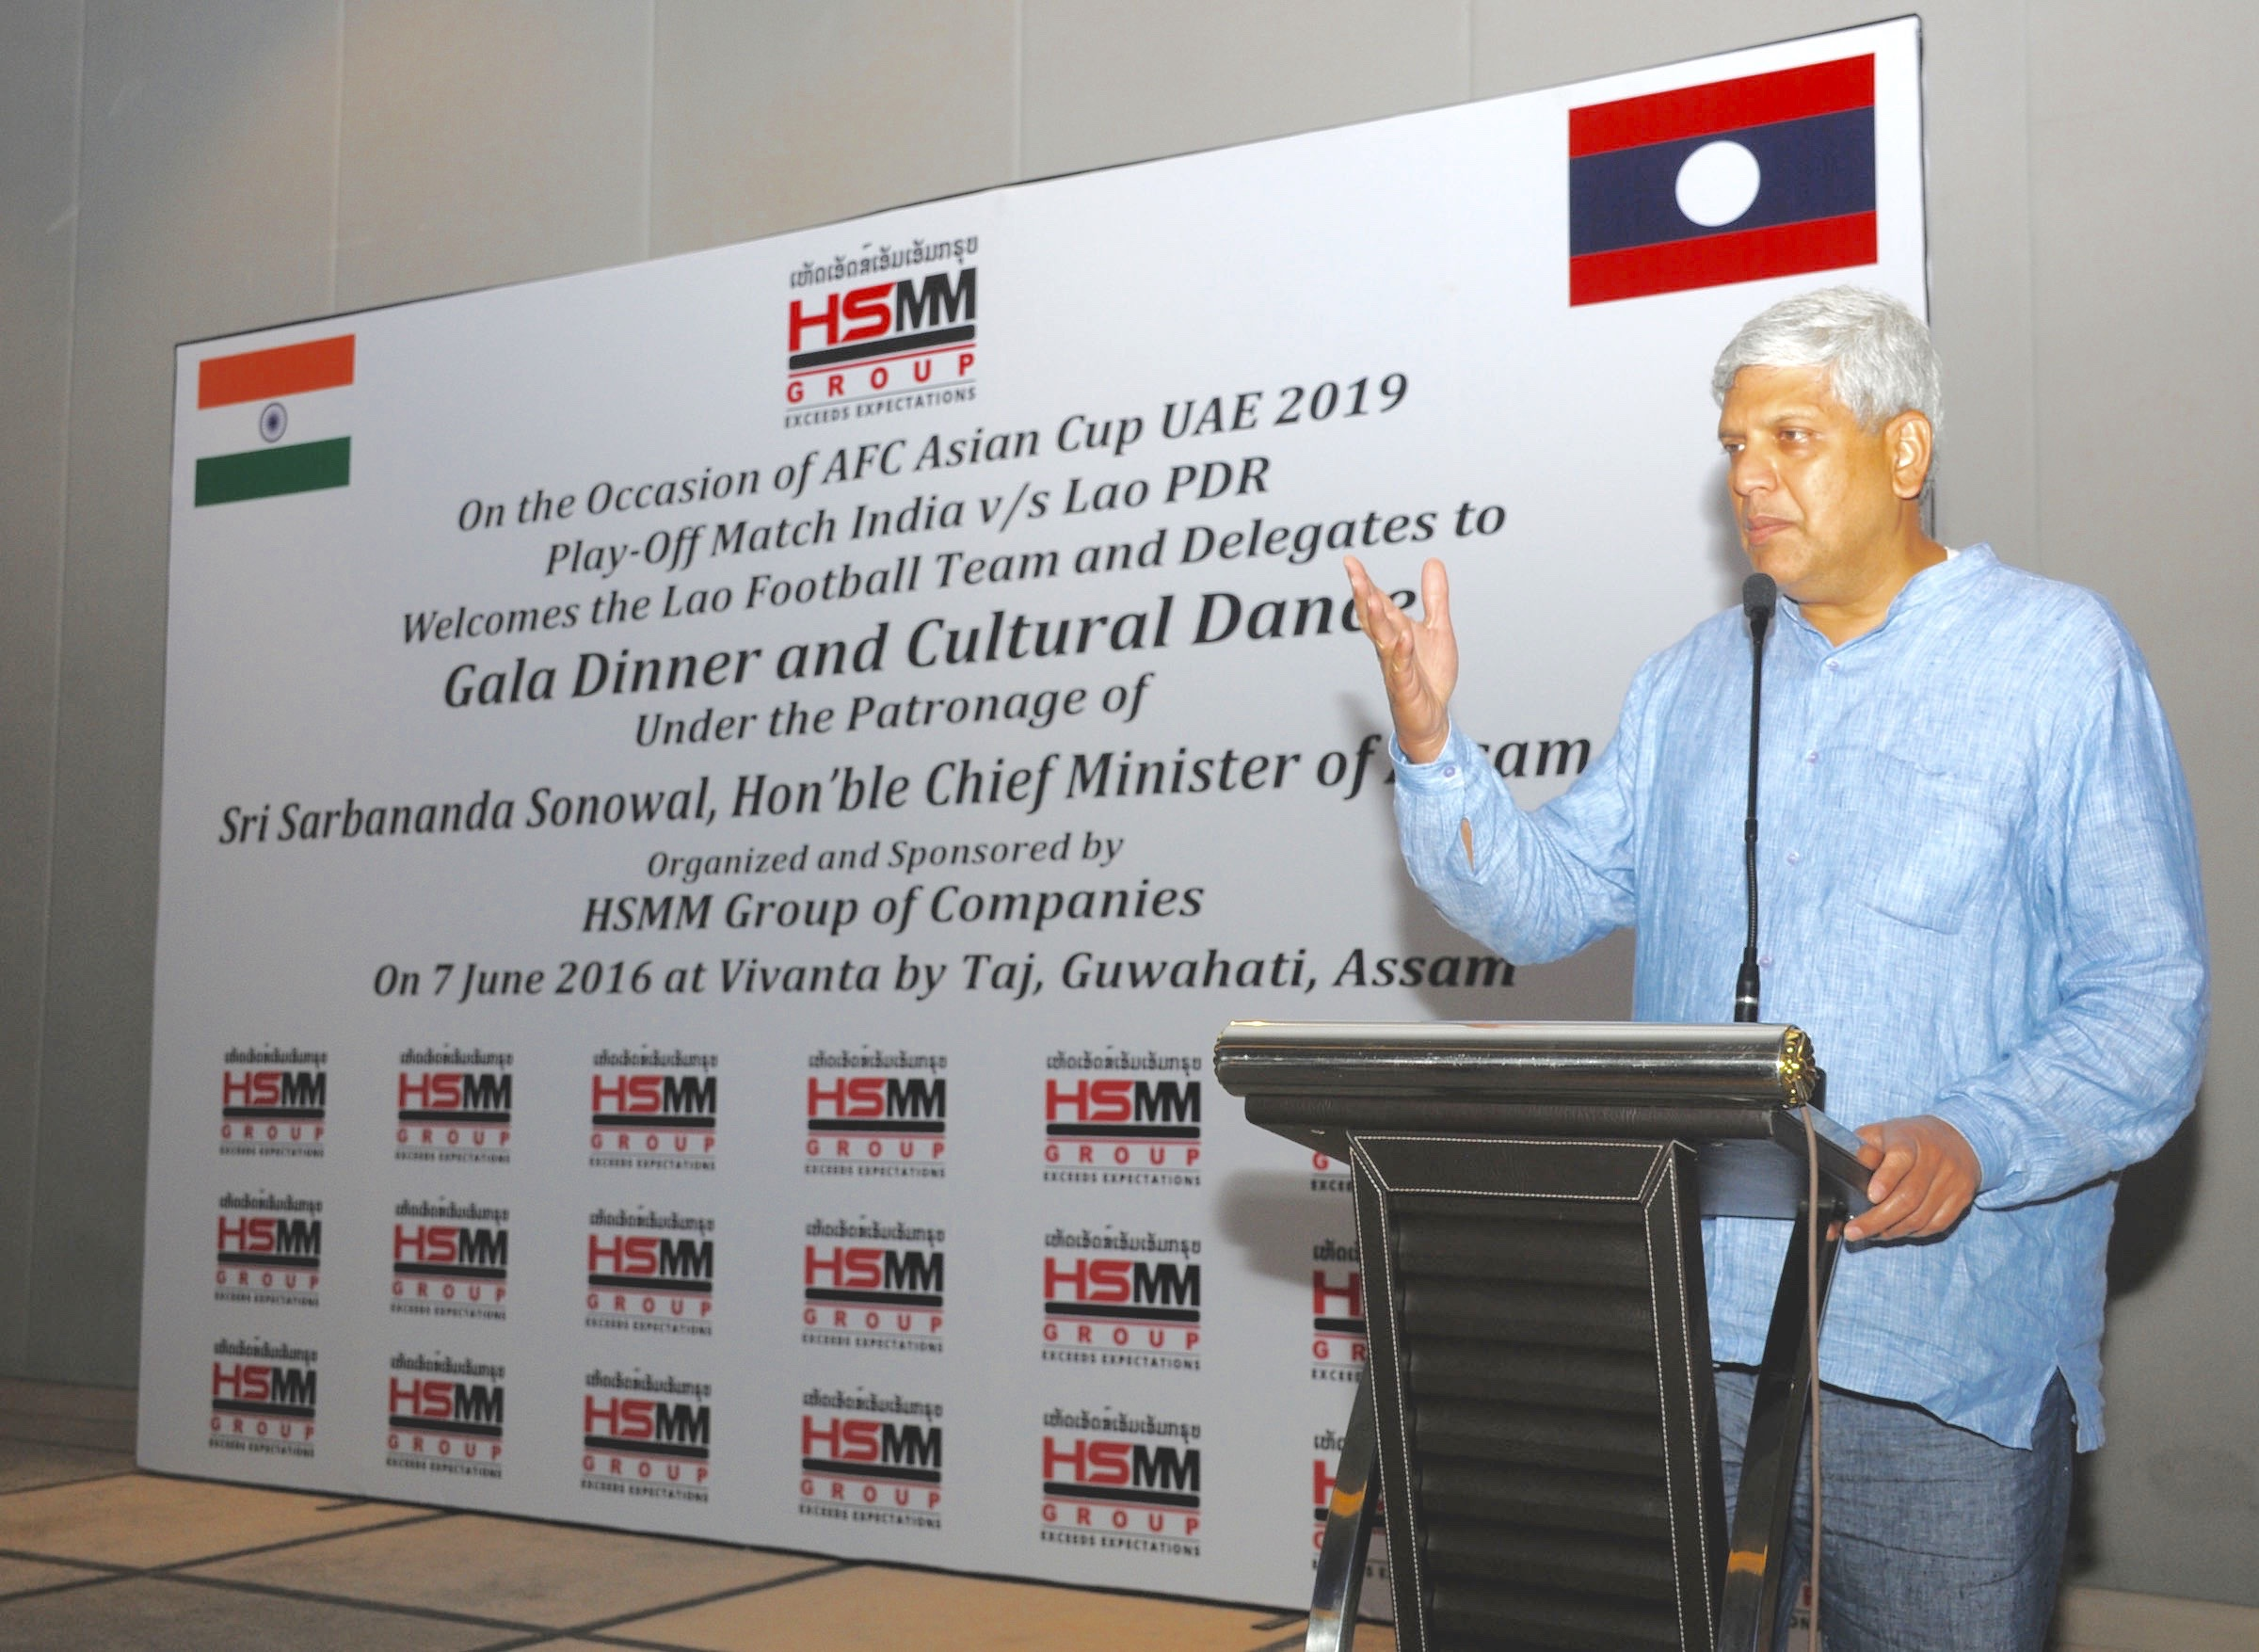 H.E. Ravi Shankar Aisola, Indian Ambassador to Lao PDR addressing the Lao Football Team on 7 June 2016 at Gala Dinner, Guwahati, Assam - sponsored by HSMM Group of Companies